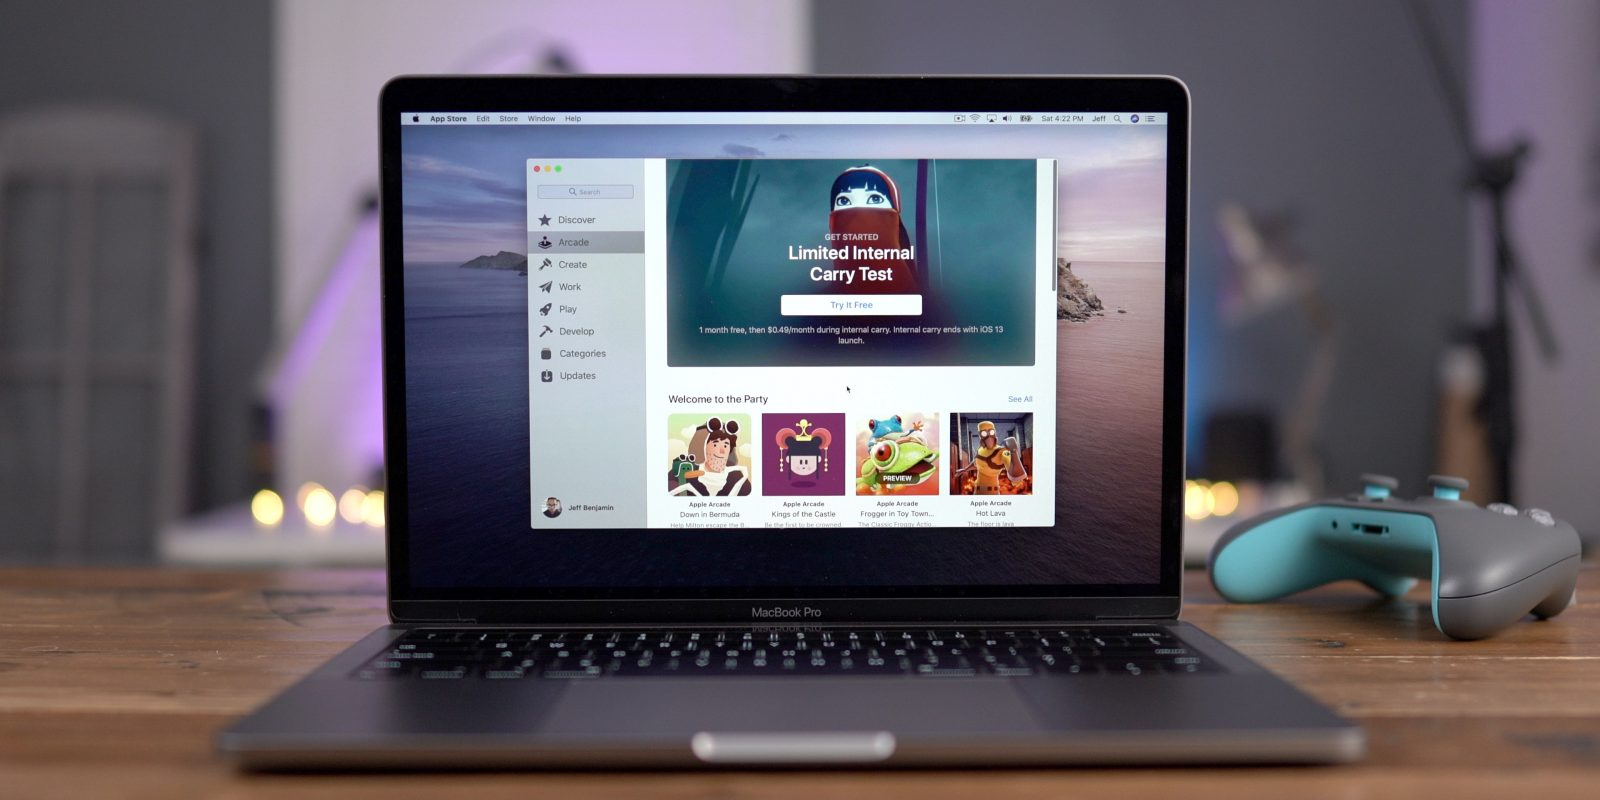 Exclusive: Apple Arcade hands-on with early access trial games on Mac [Video]